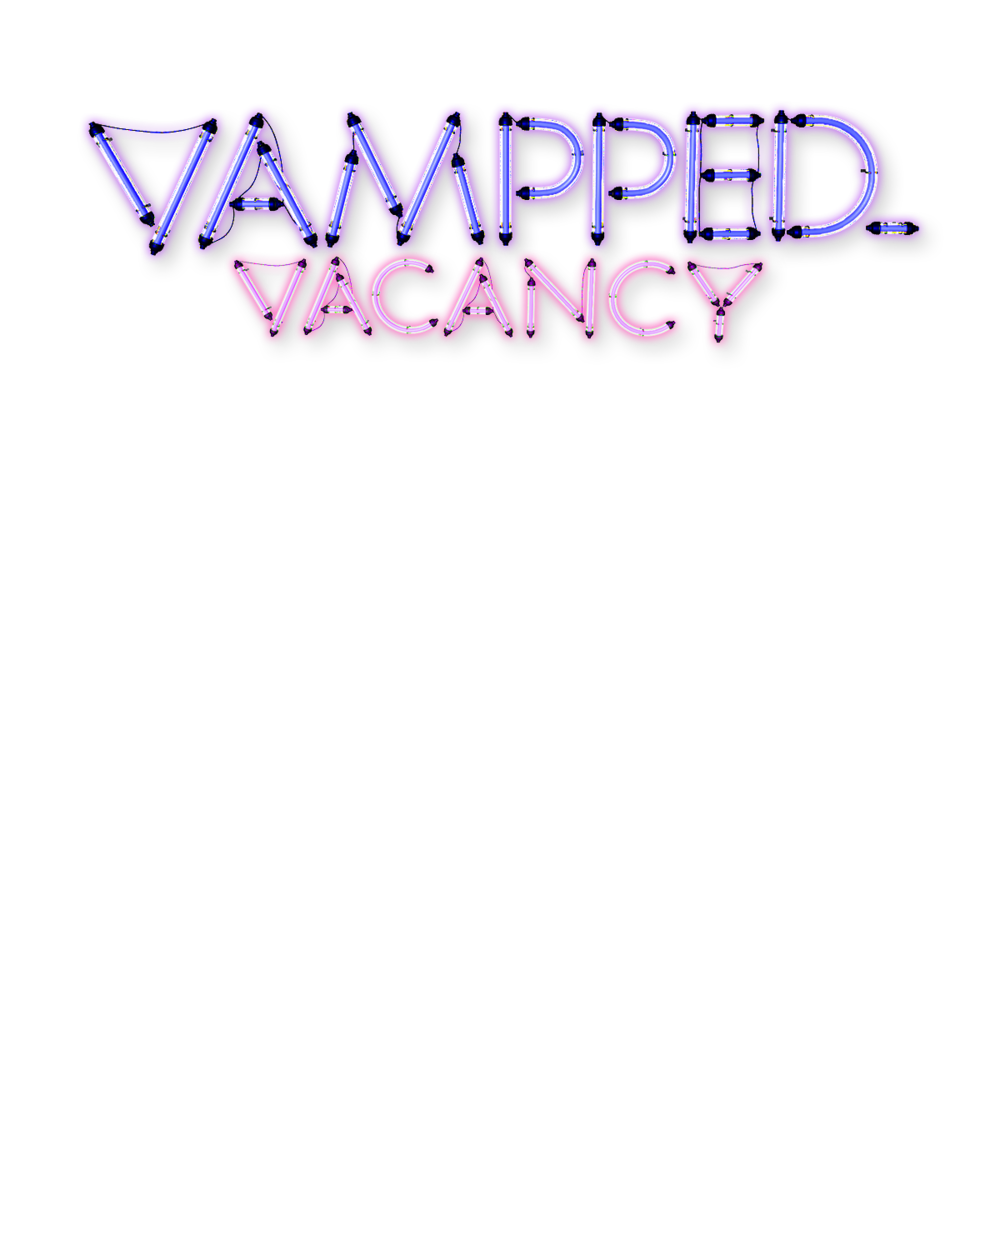 Vampped Vacancy - title.png